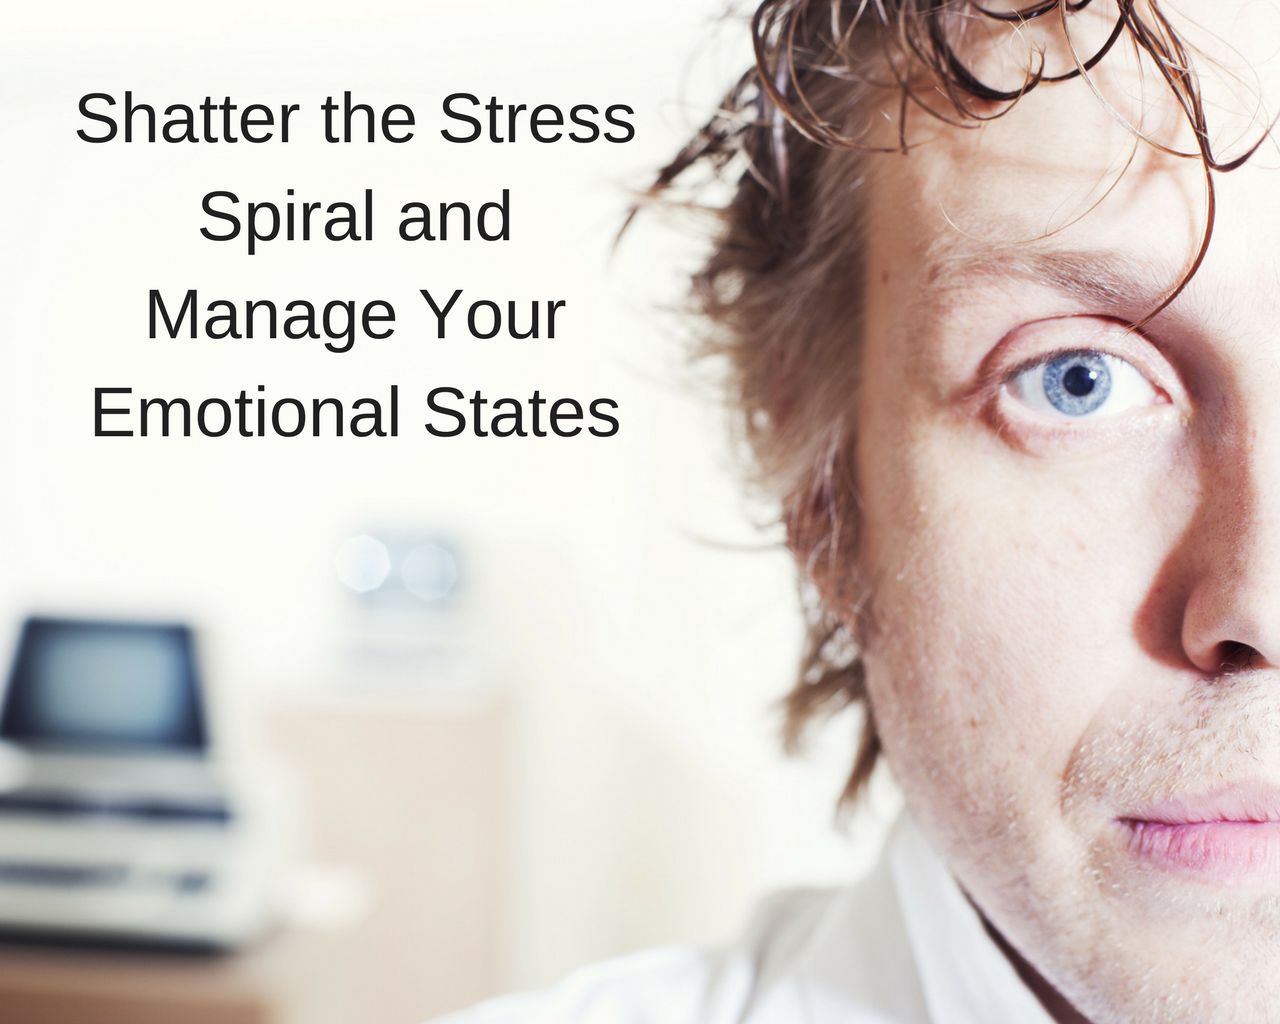 Marshall Tarley Shatter the Stress Spiral and Manage Your Emotional States